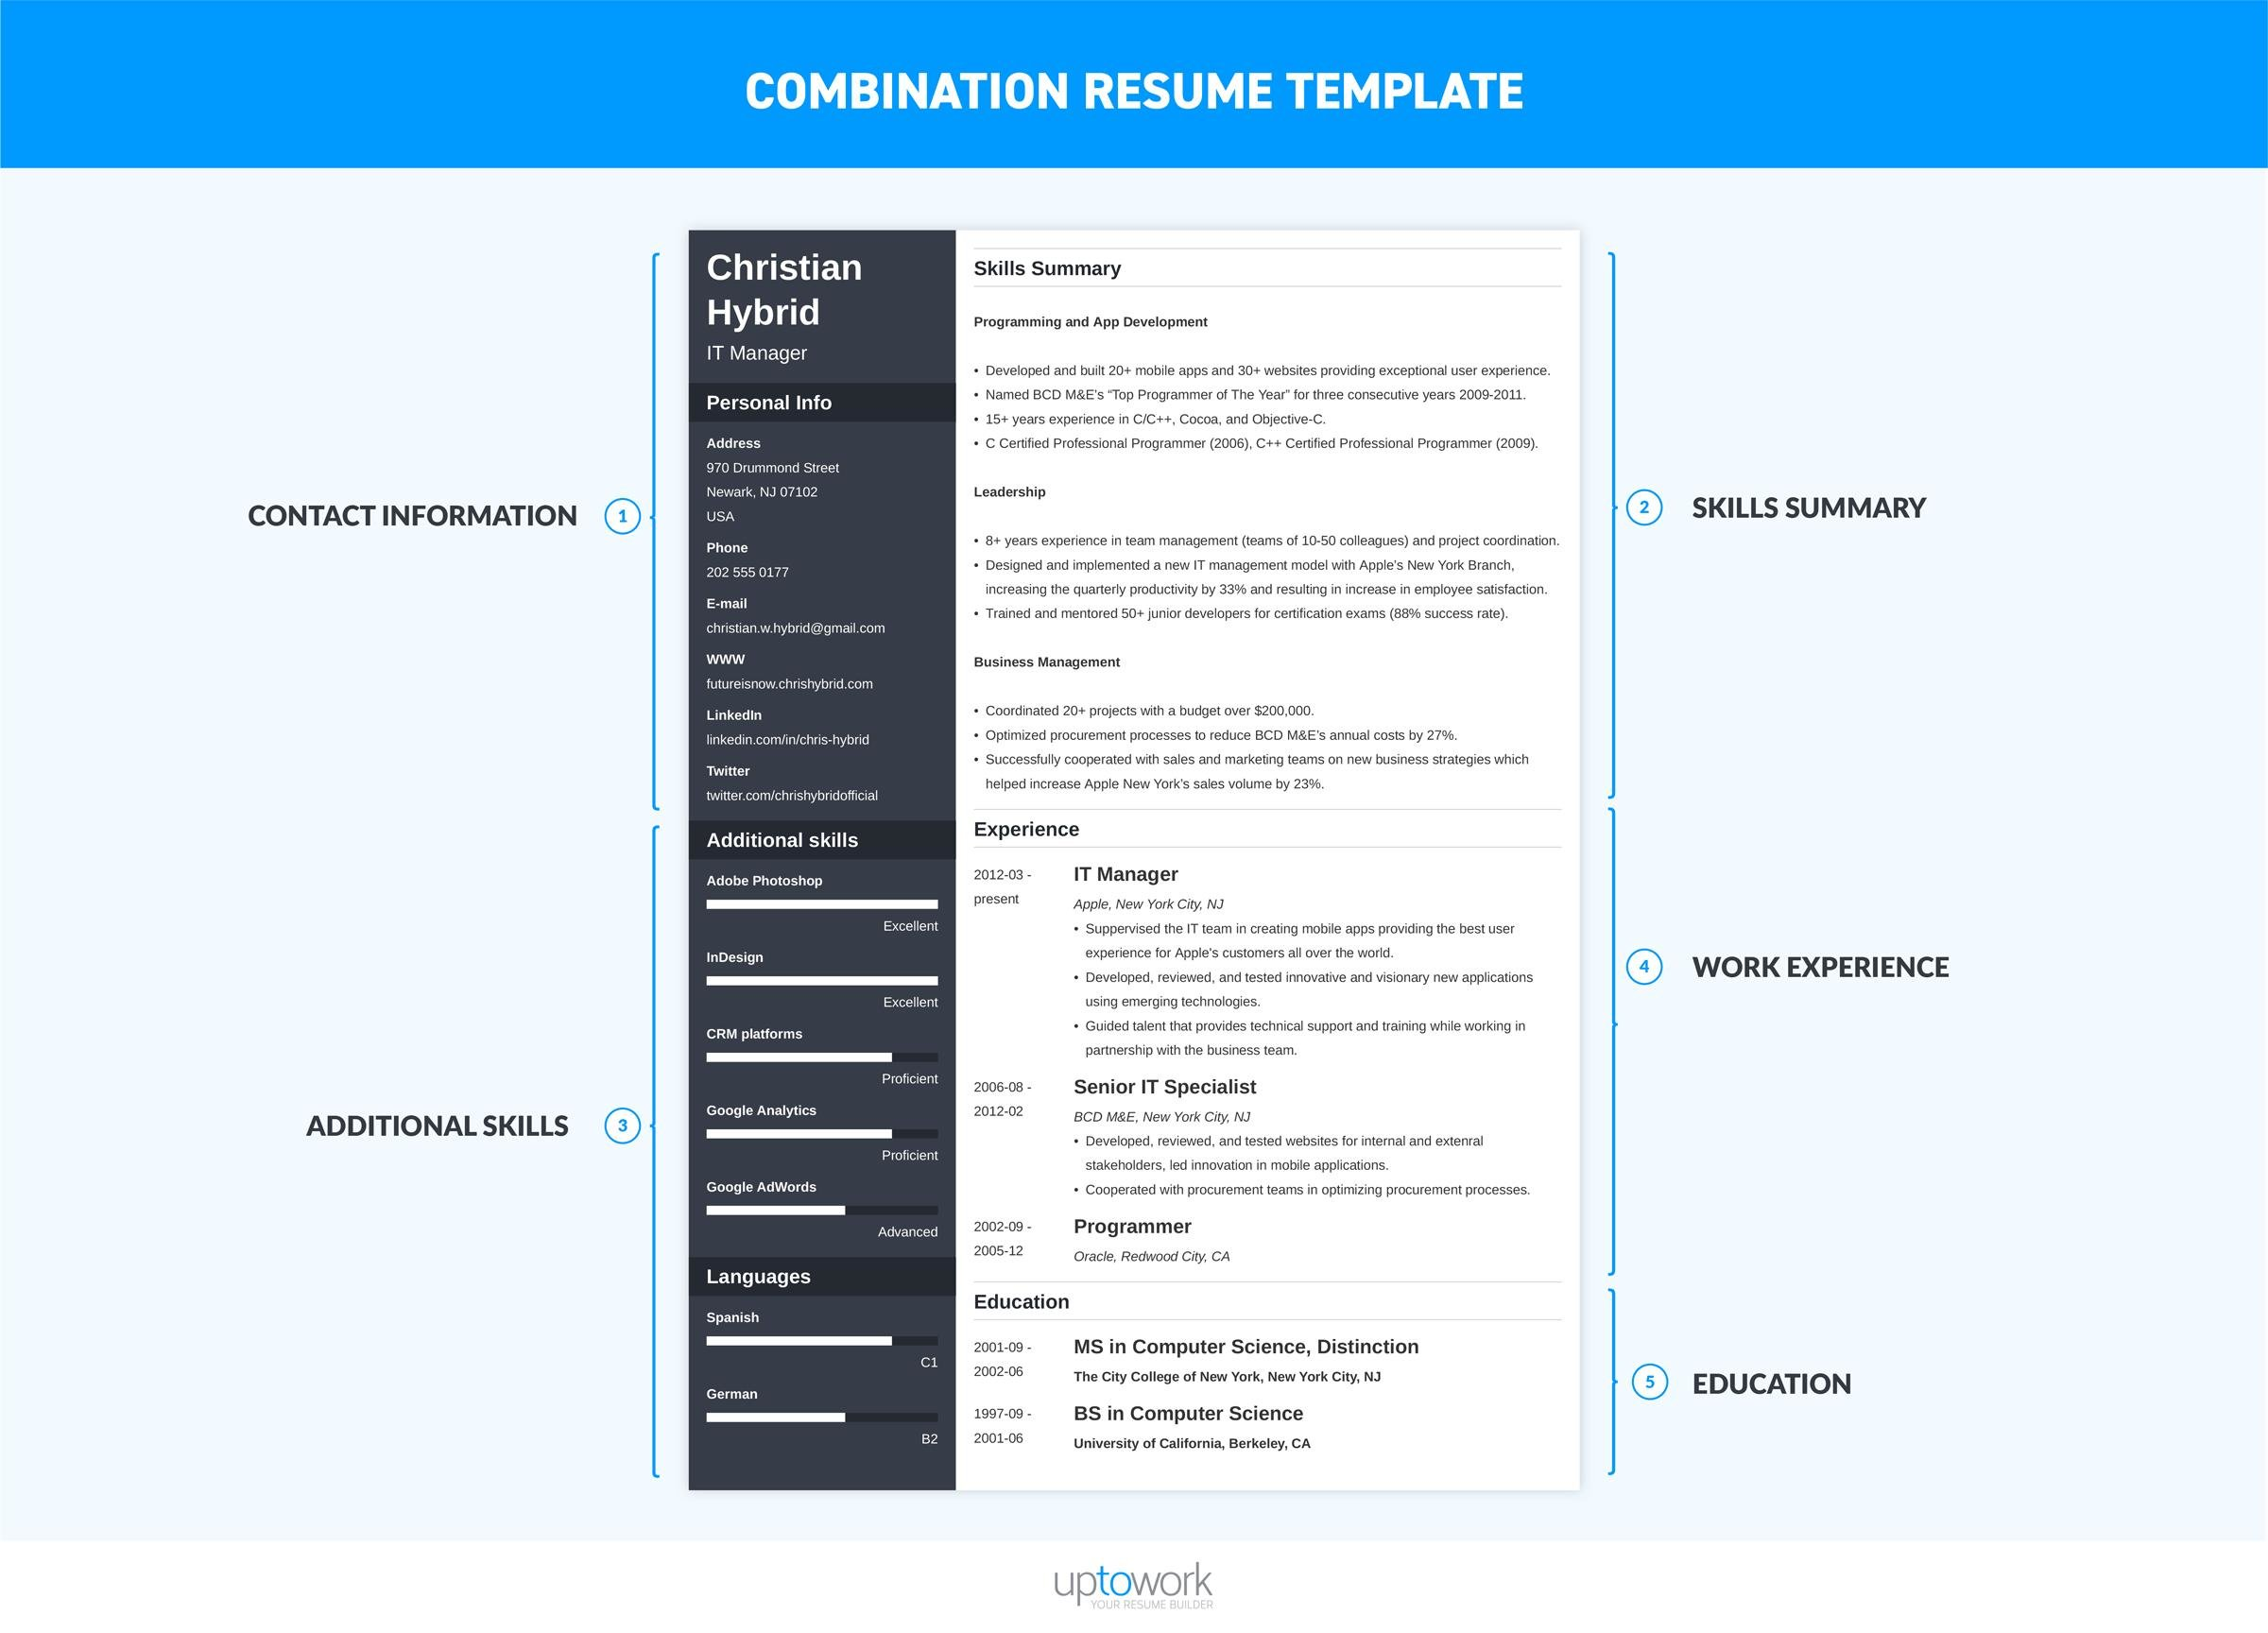 combination resume format - Formatted Resume Template